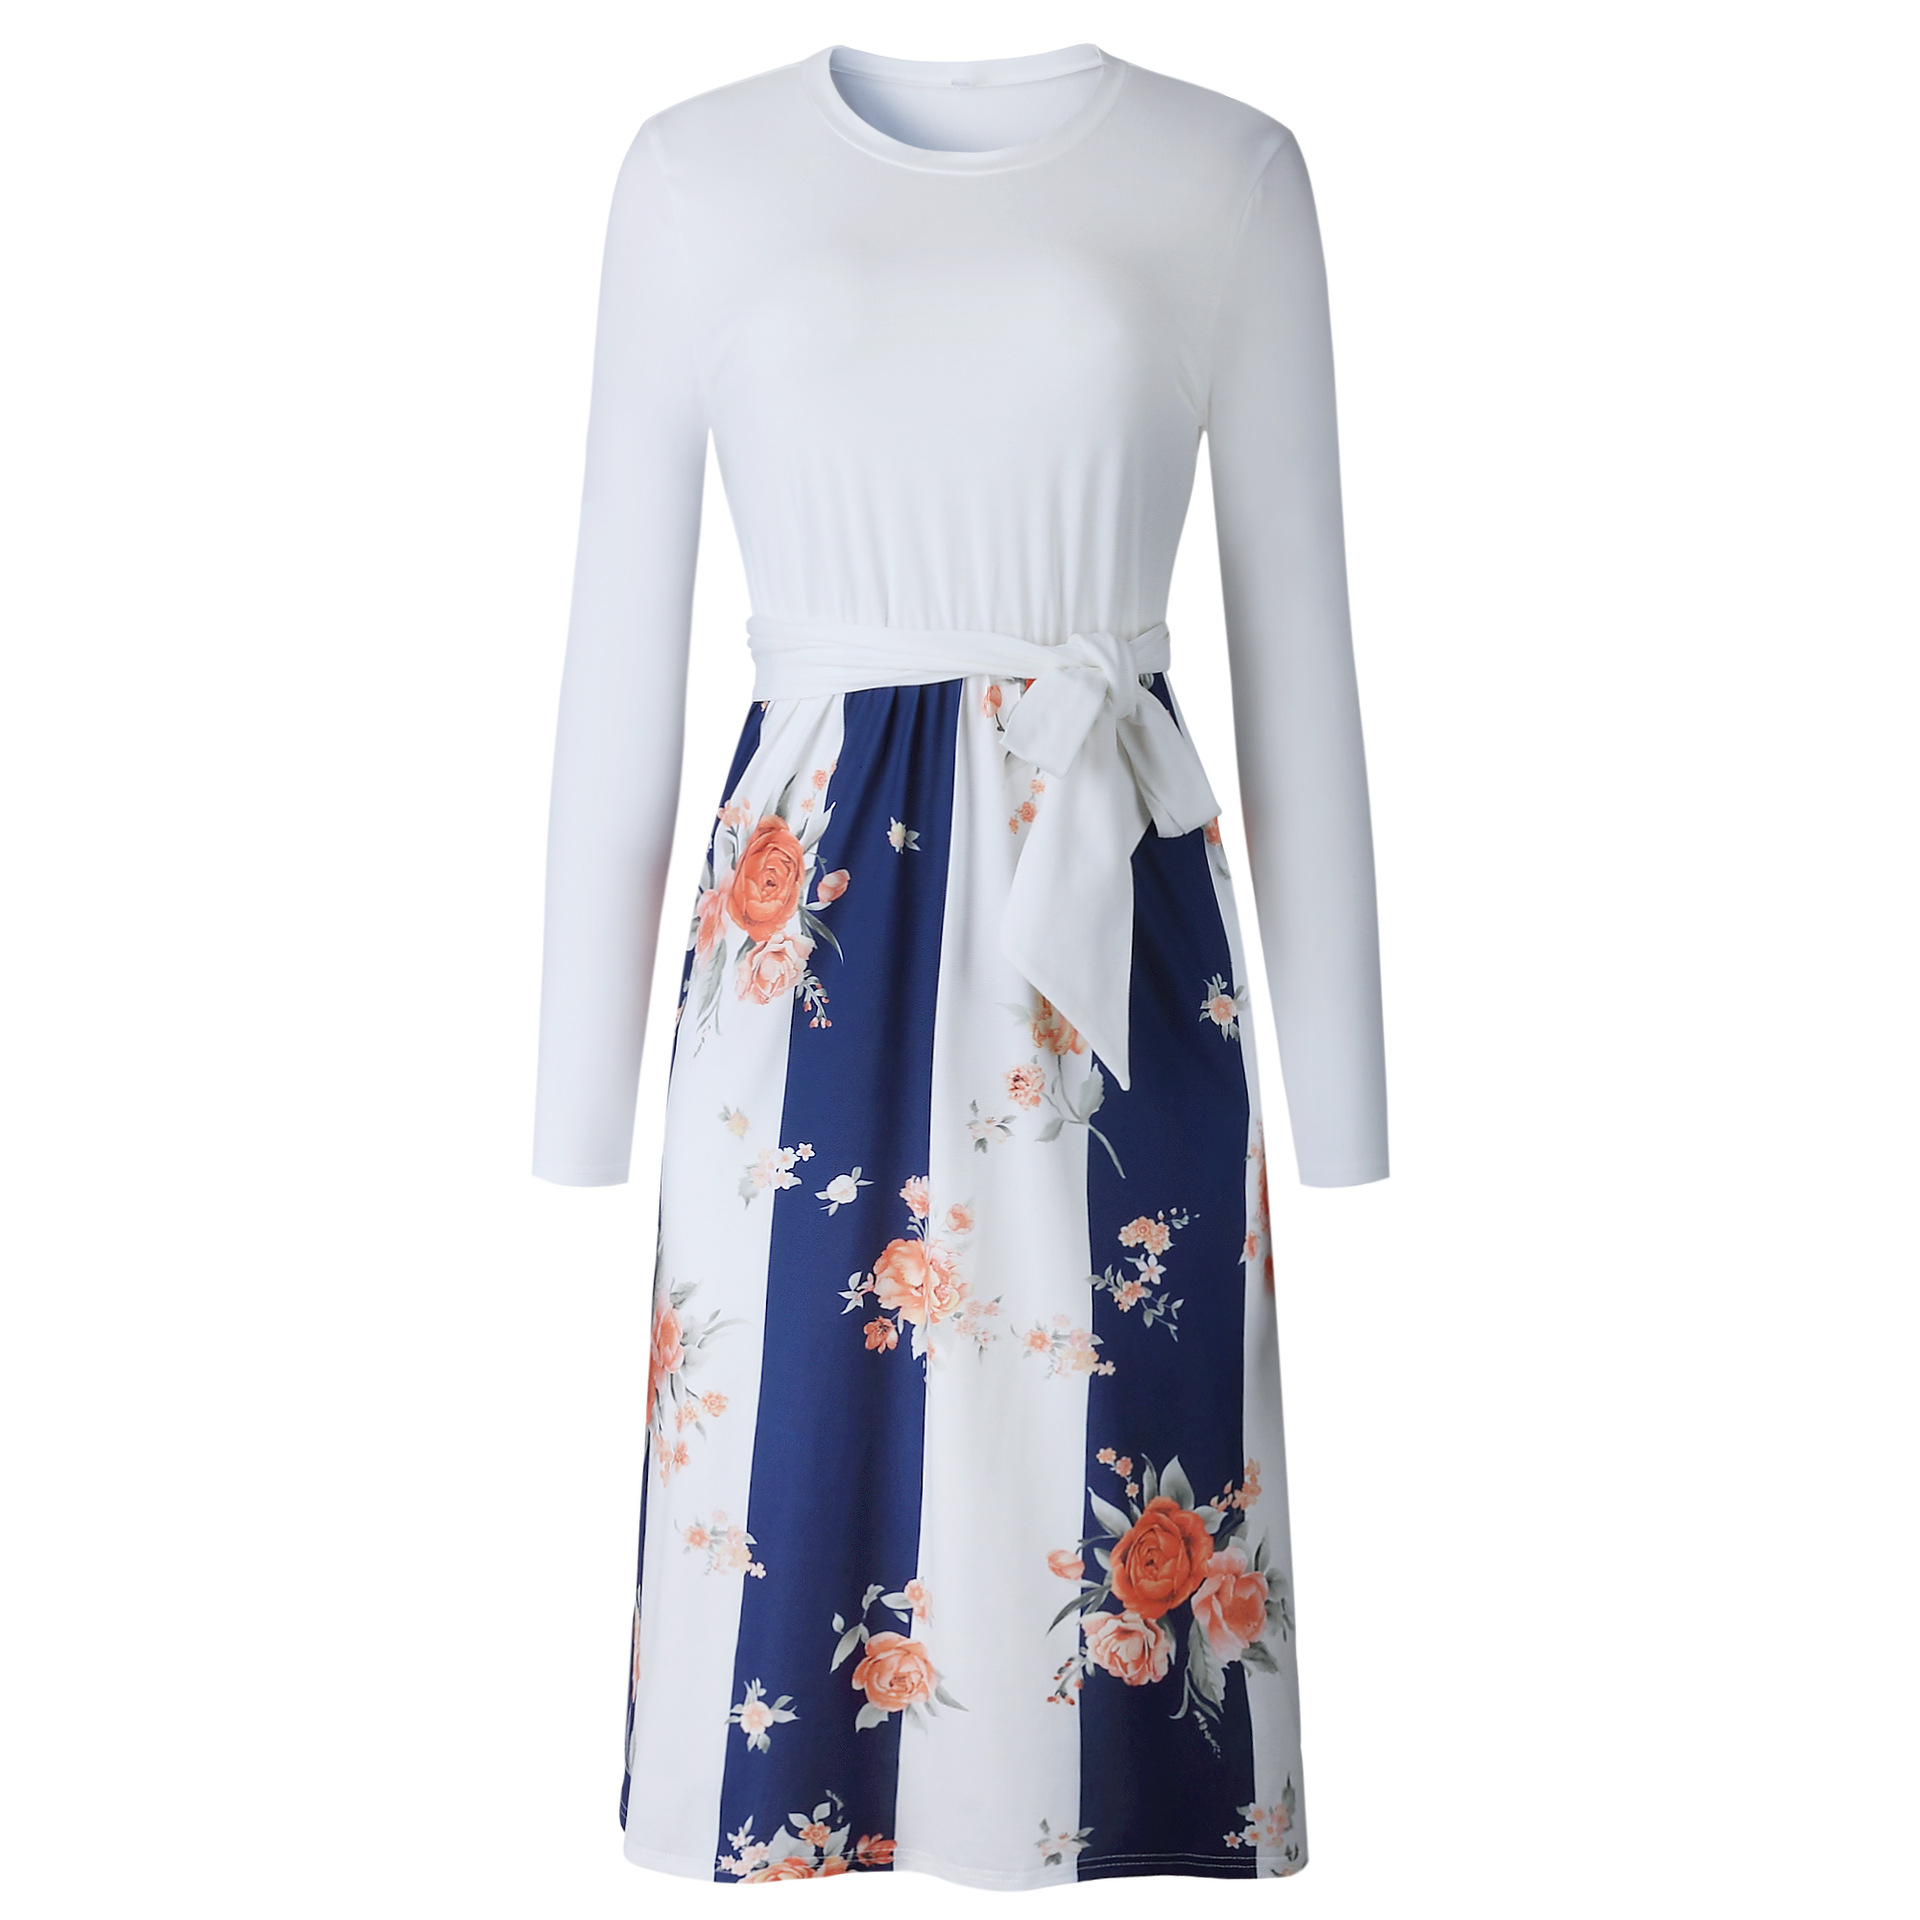 Stitching Printed Women Dress Tight Waist Long Sleeve Long Ladies Dresses 2018 Fashion Autumn Female Vestidos